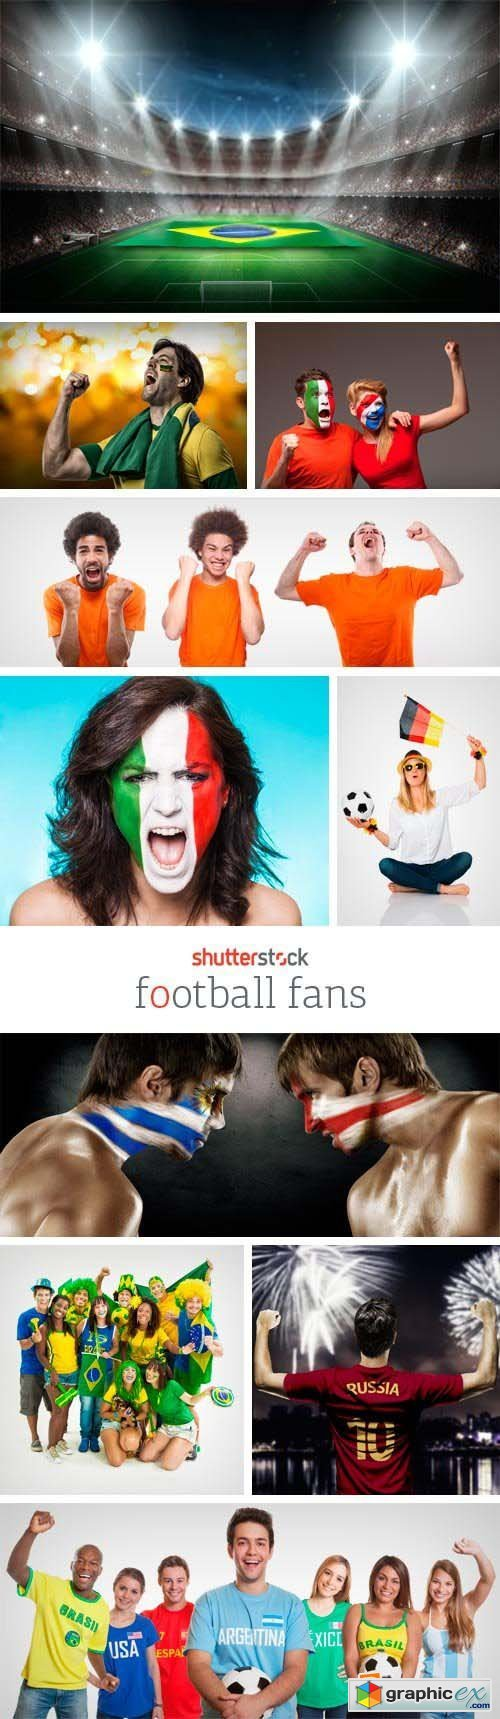 Amazing SS - Football Fans, 25xJPGs